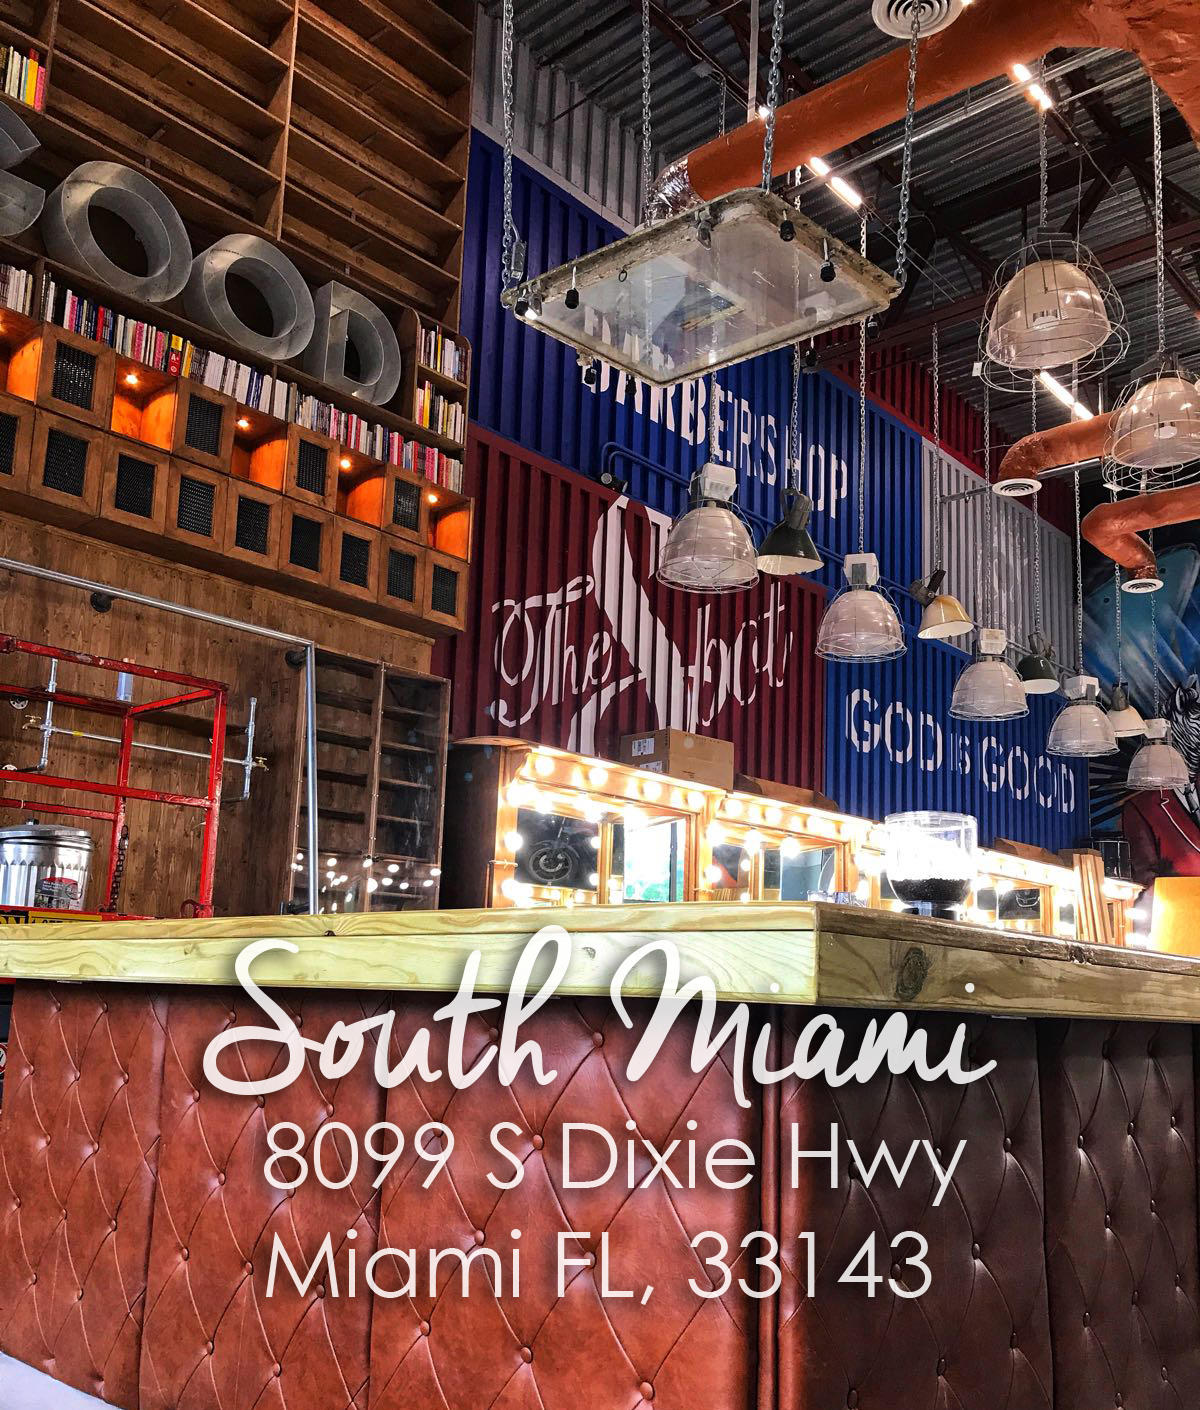 The Spot Barbershop - South Miami